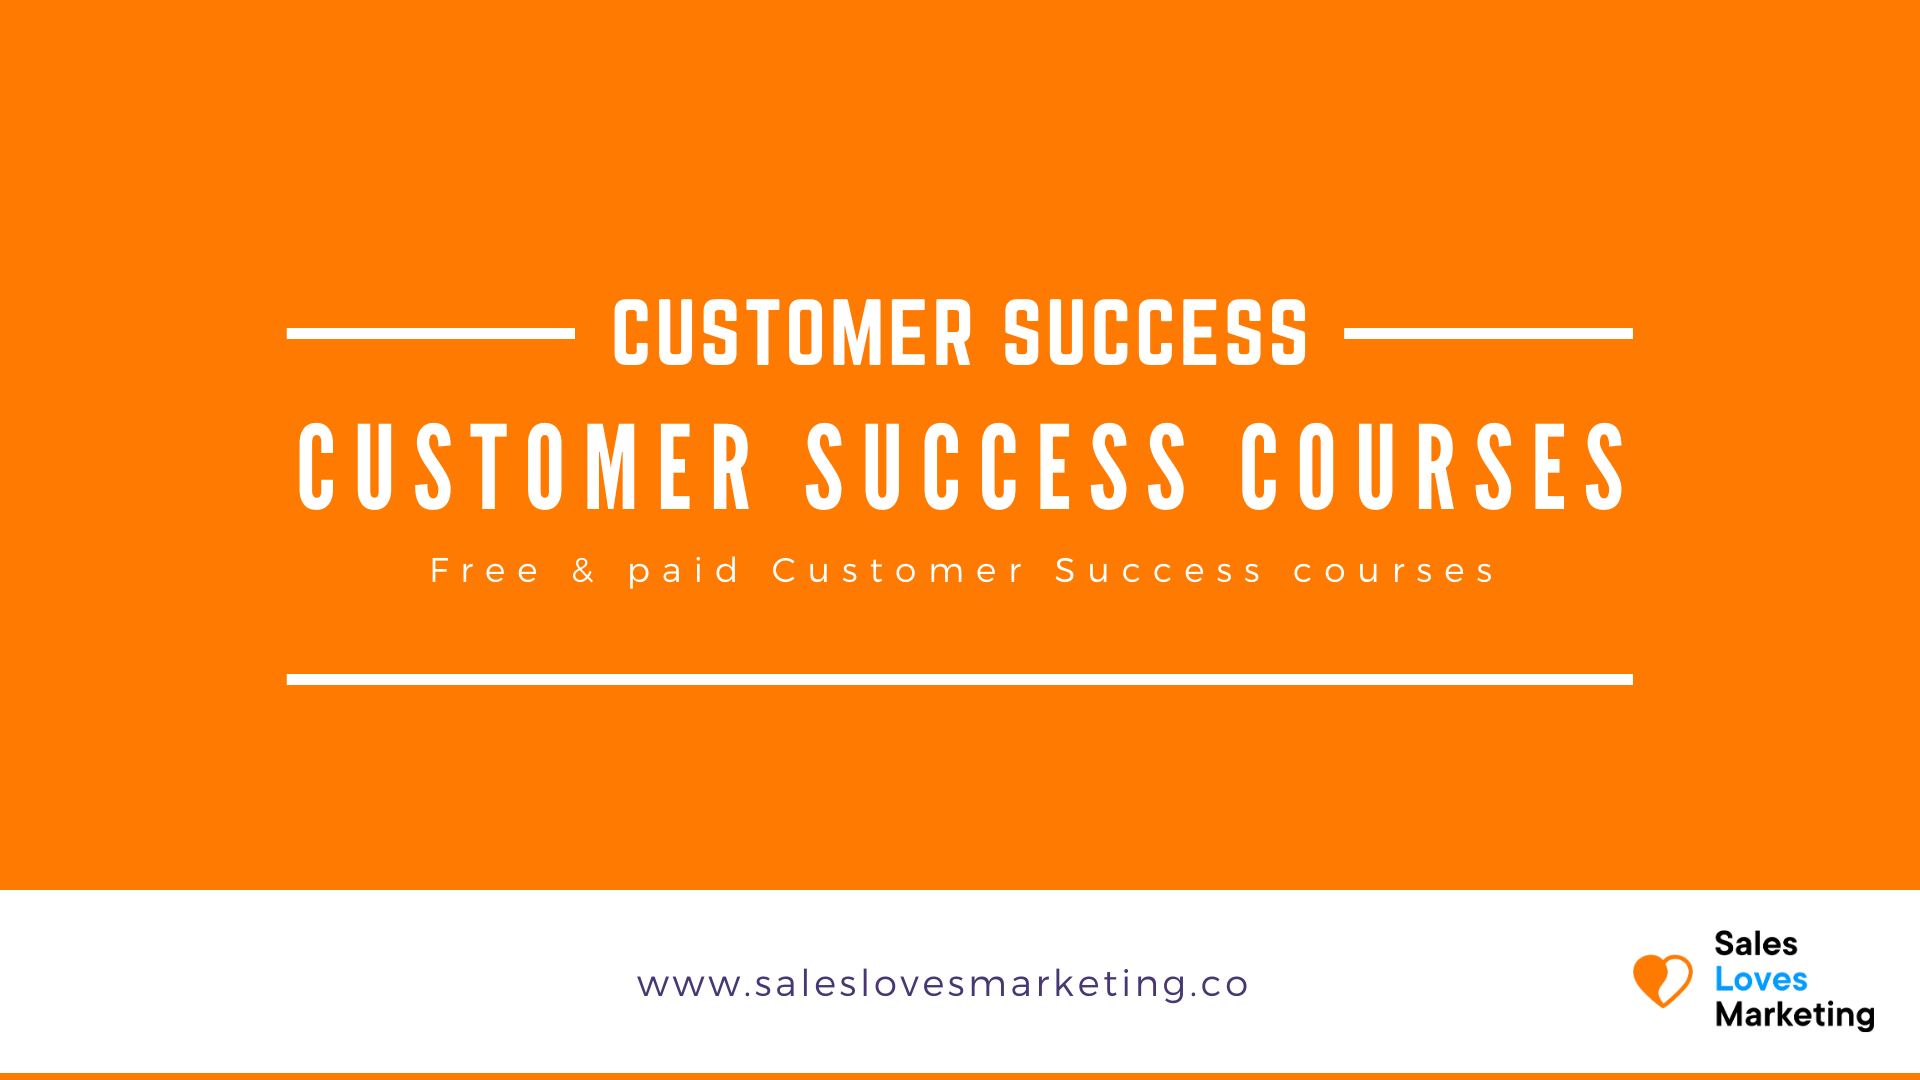 All free & paid Customer Success Courses listed on one page